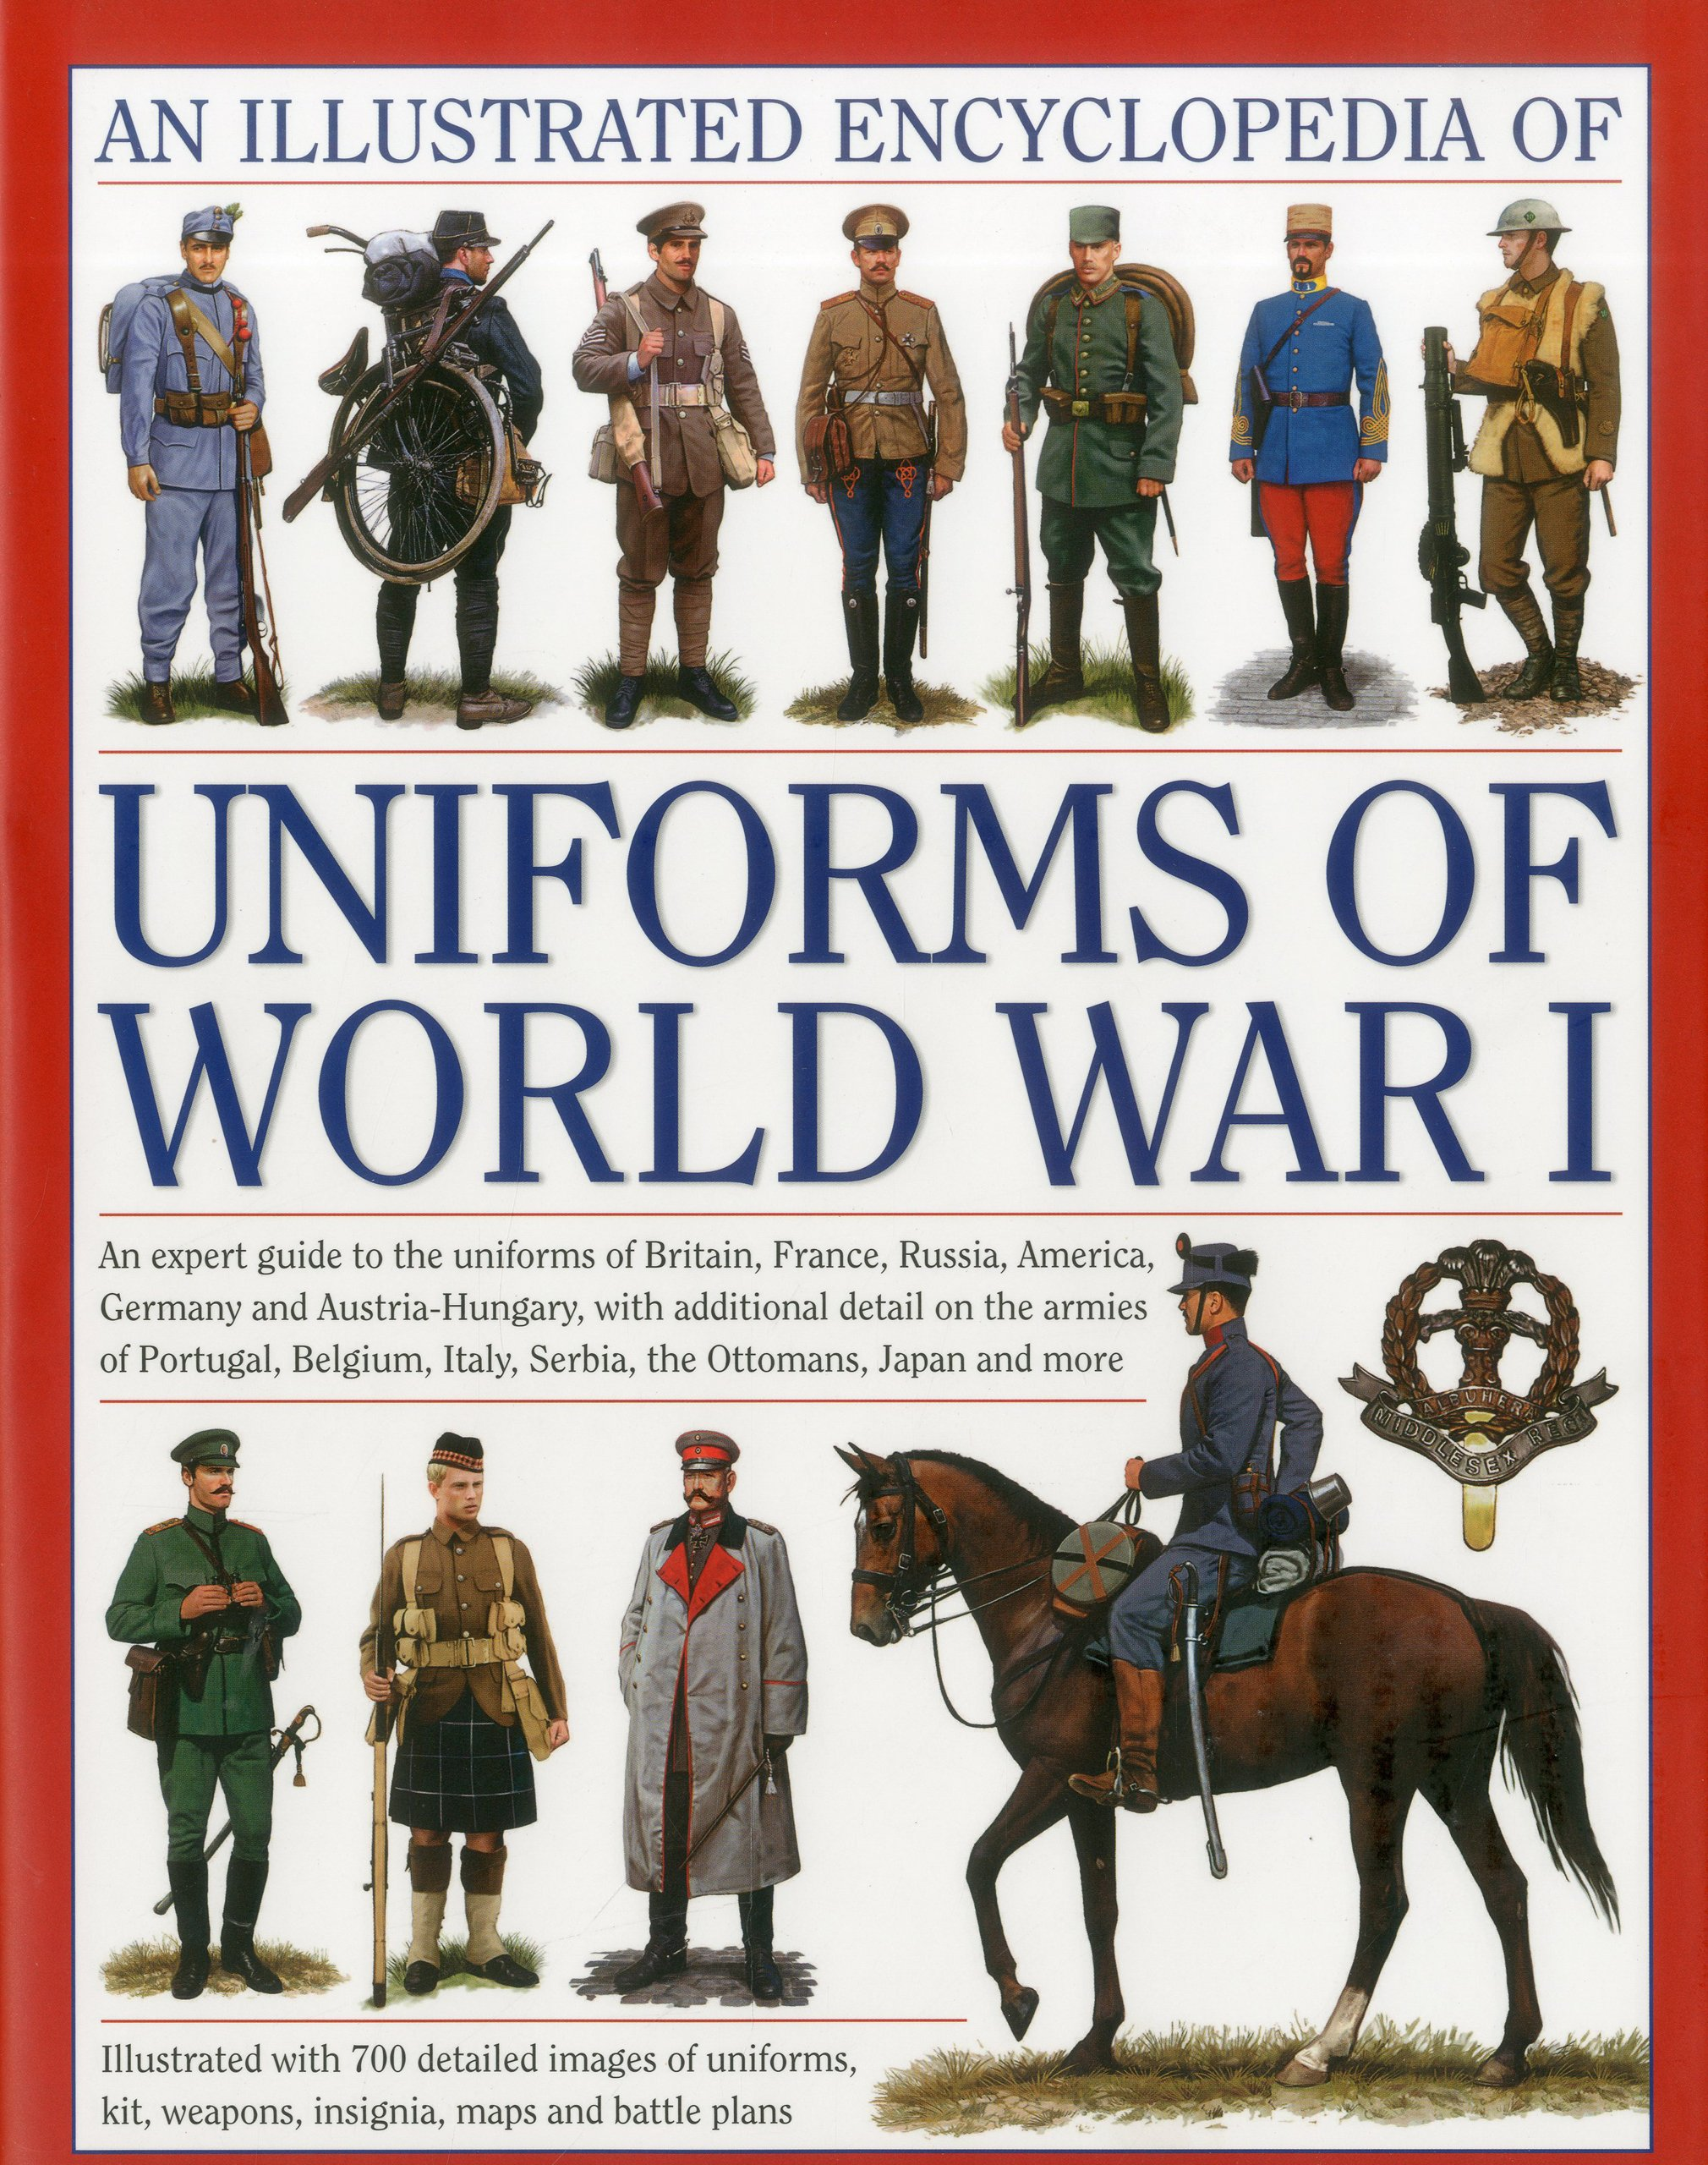 Buy illustrated encyclopedia of uniforms of world war i book online buy illustrated encyclopedia of uniforms of world war i book online at low prices in india illustrated encyclopedia of uniforms of world war i reviews gumiabroncs Image collections